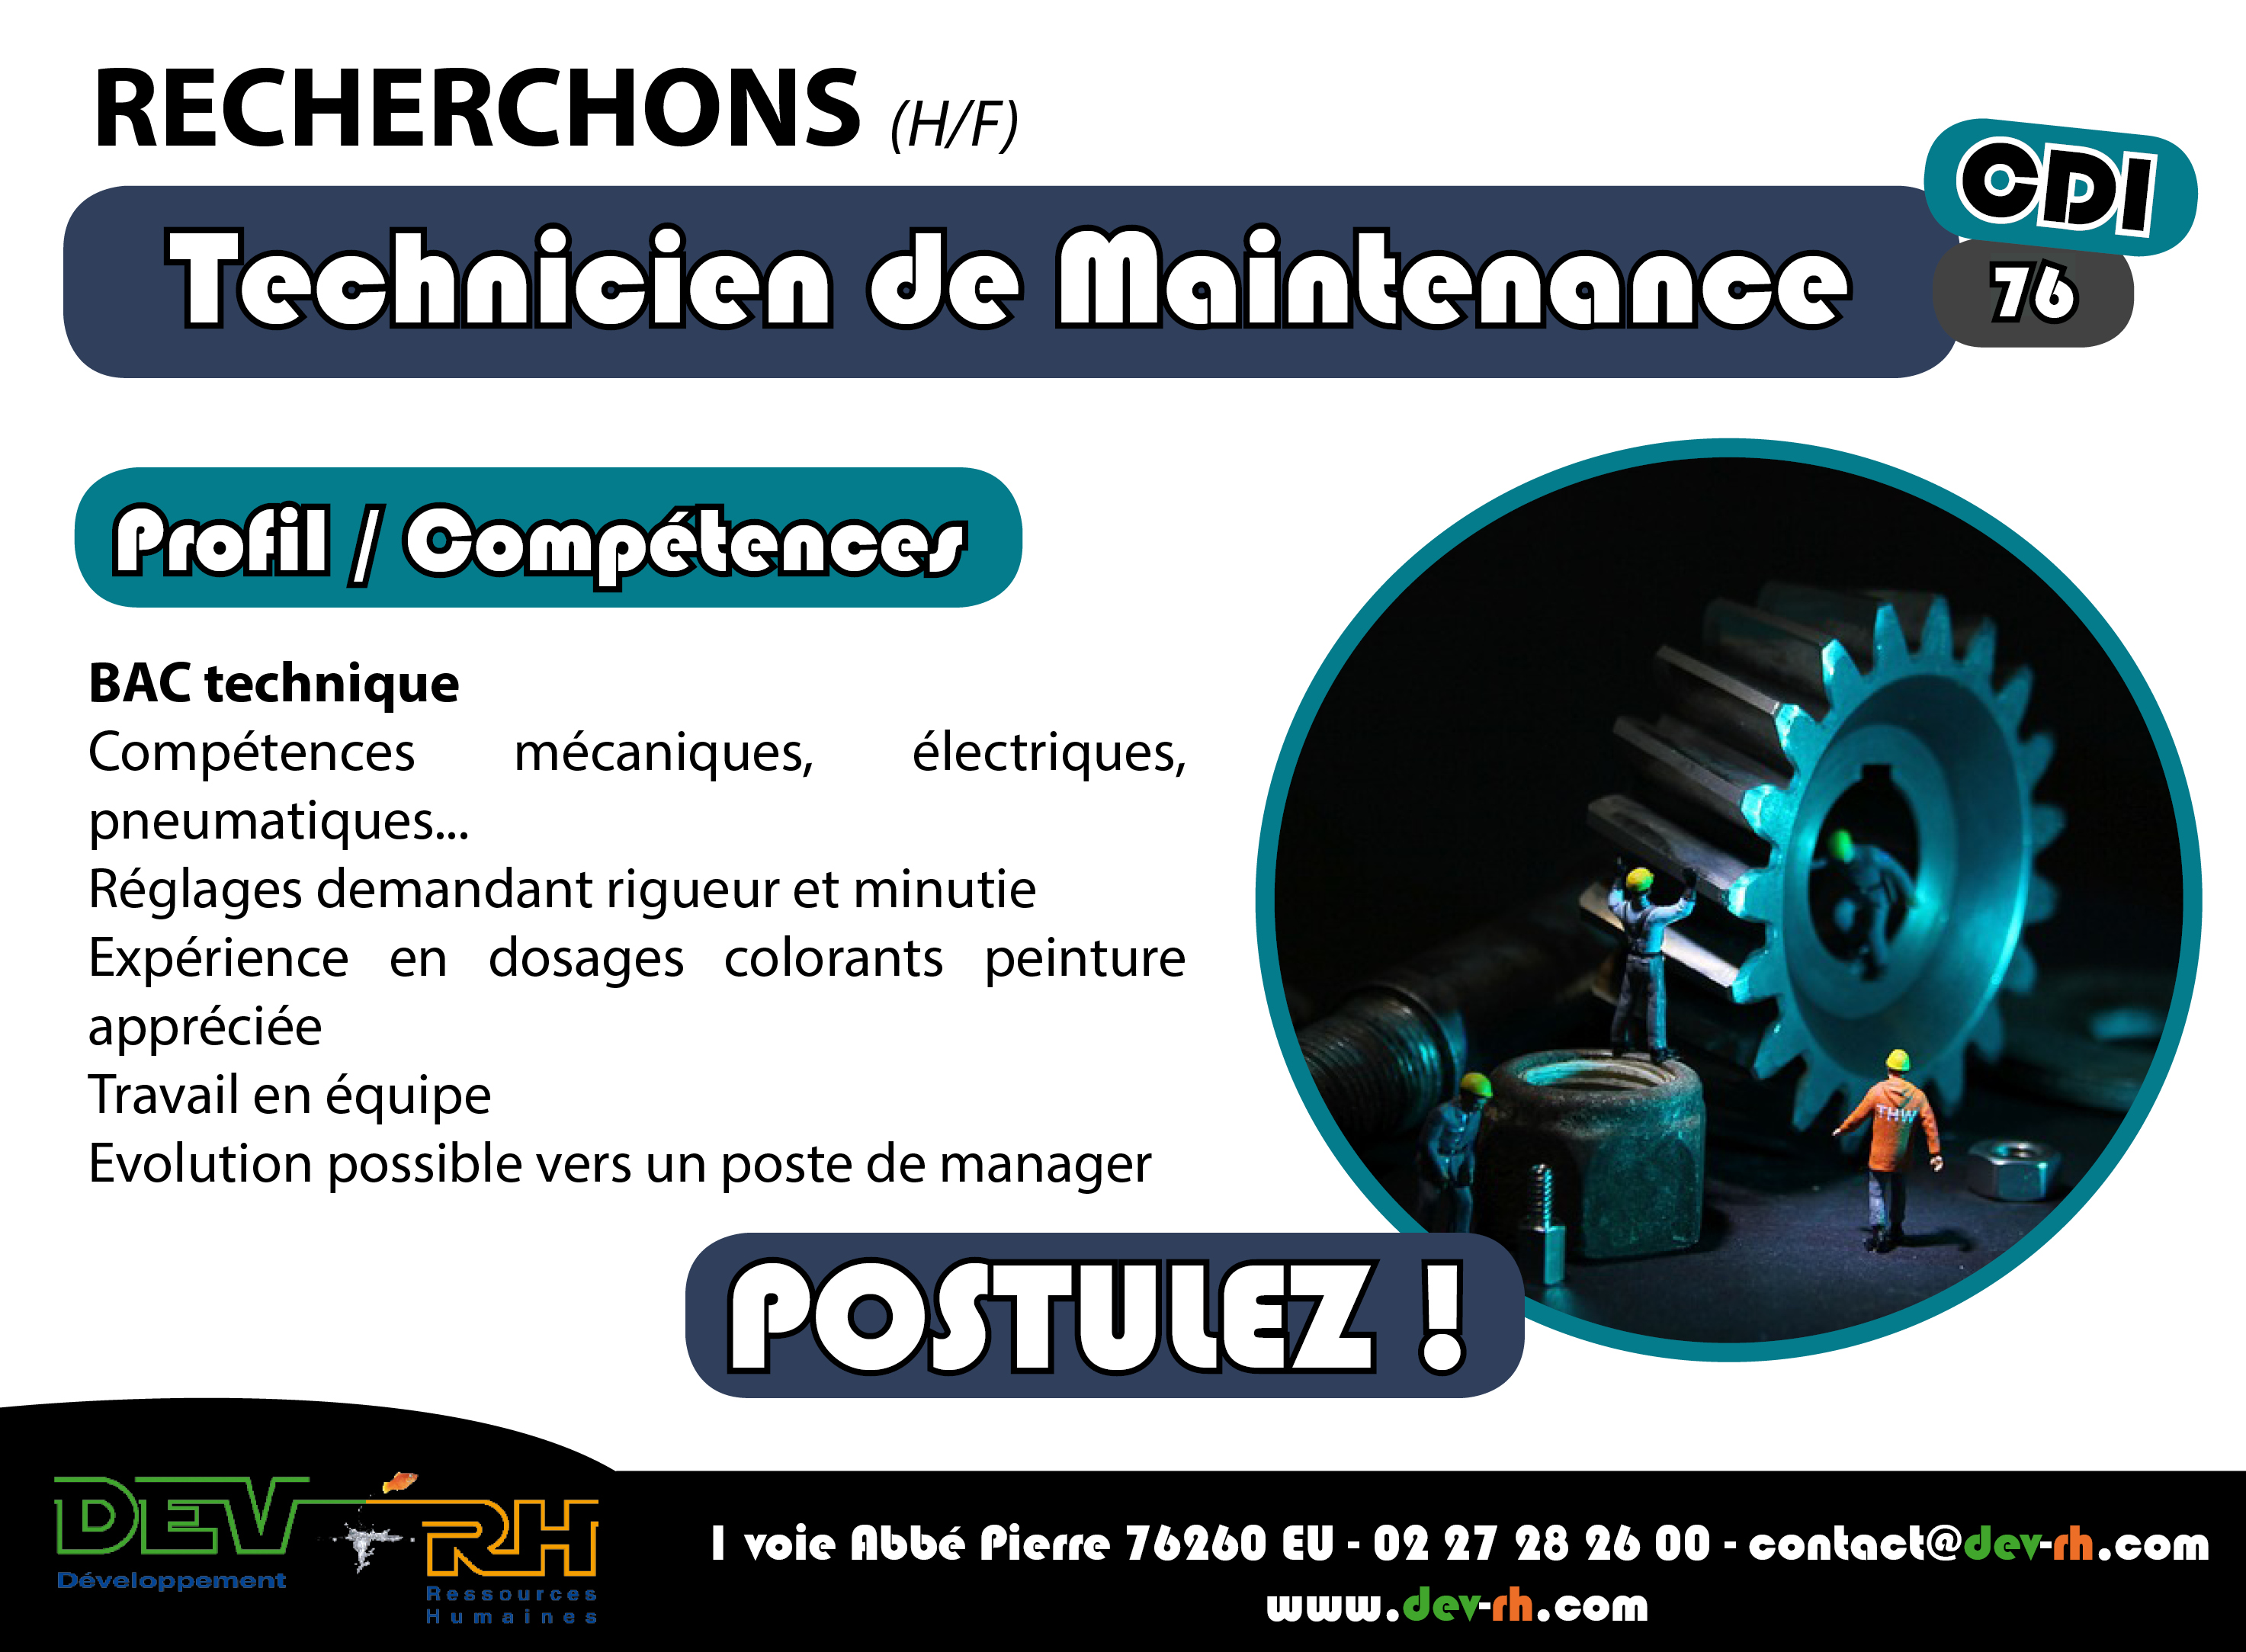 technicien de maintenance  h  f  en cdi